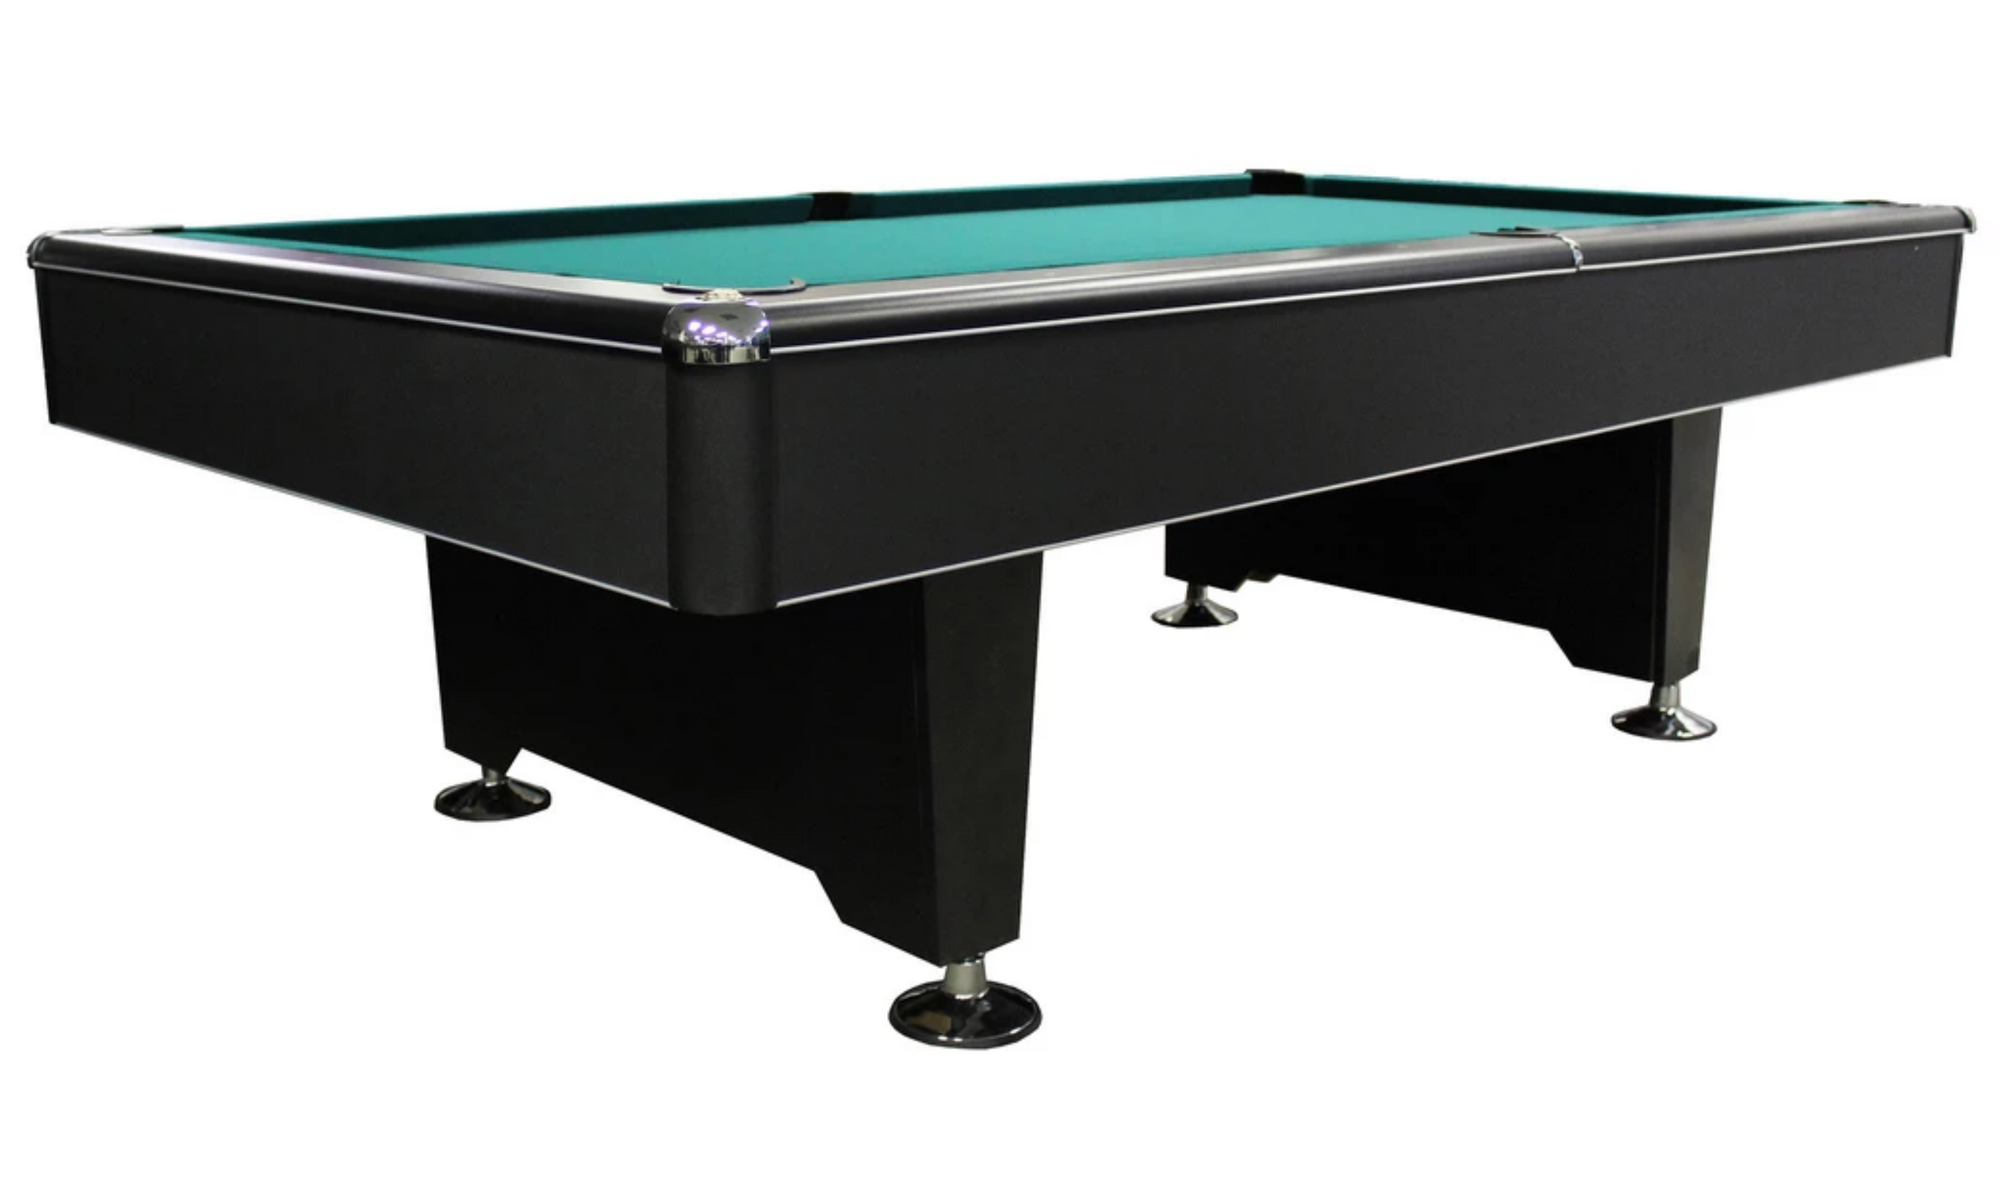 THE ELIMINATOR POOL TABLE